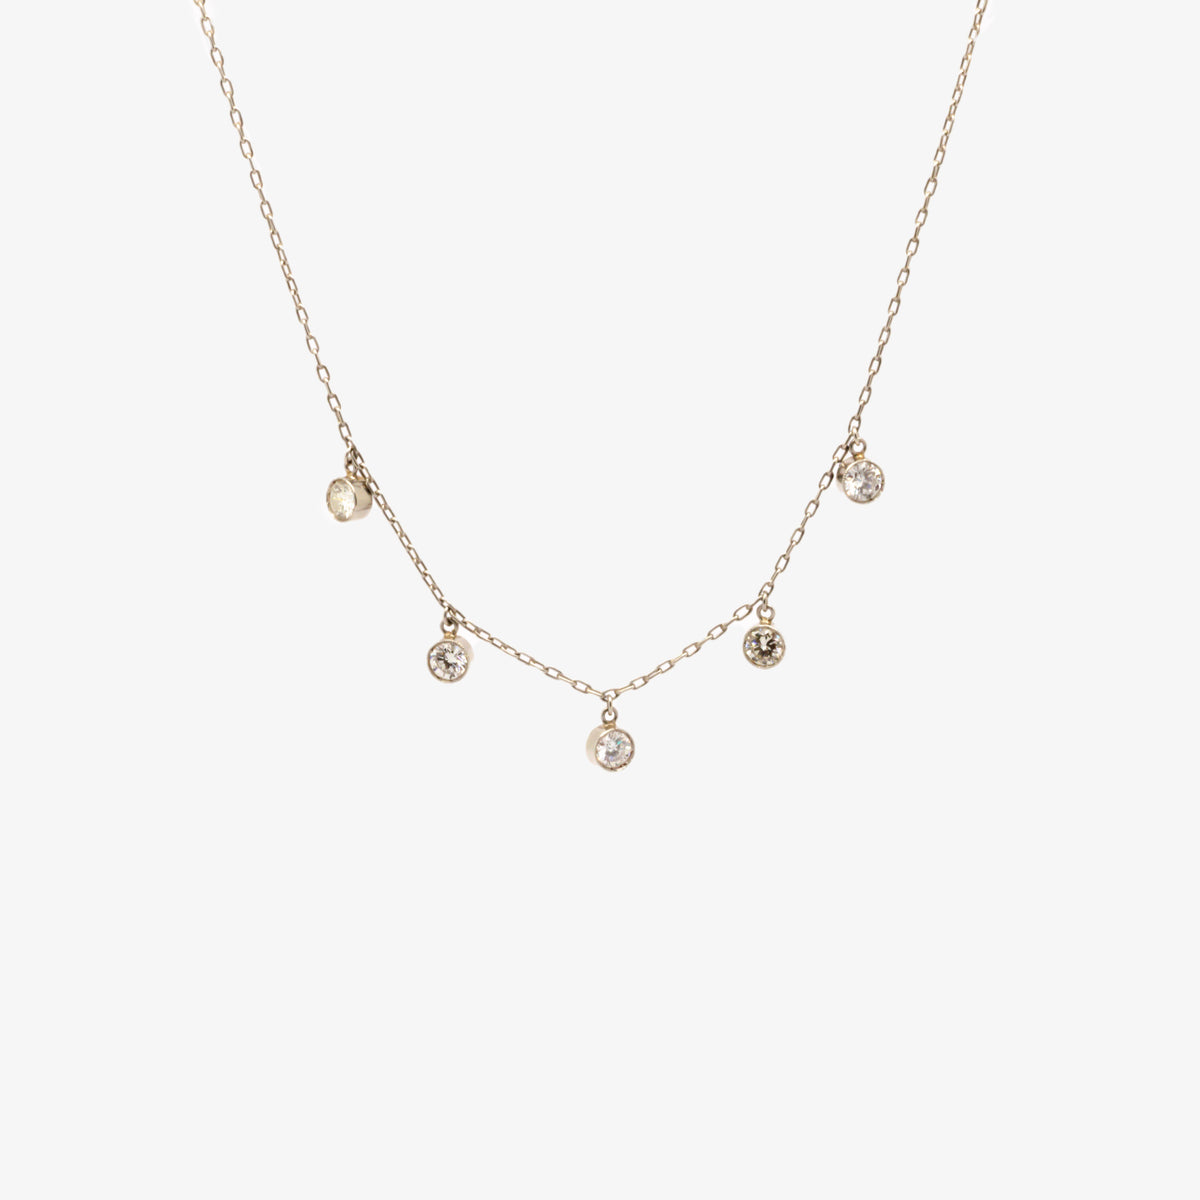 Antique Diamond Droplet Necklace